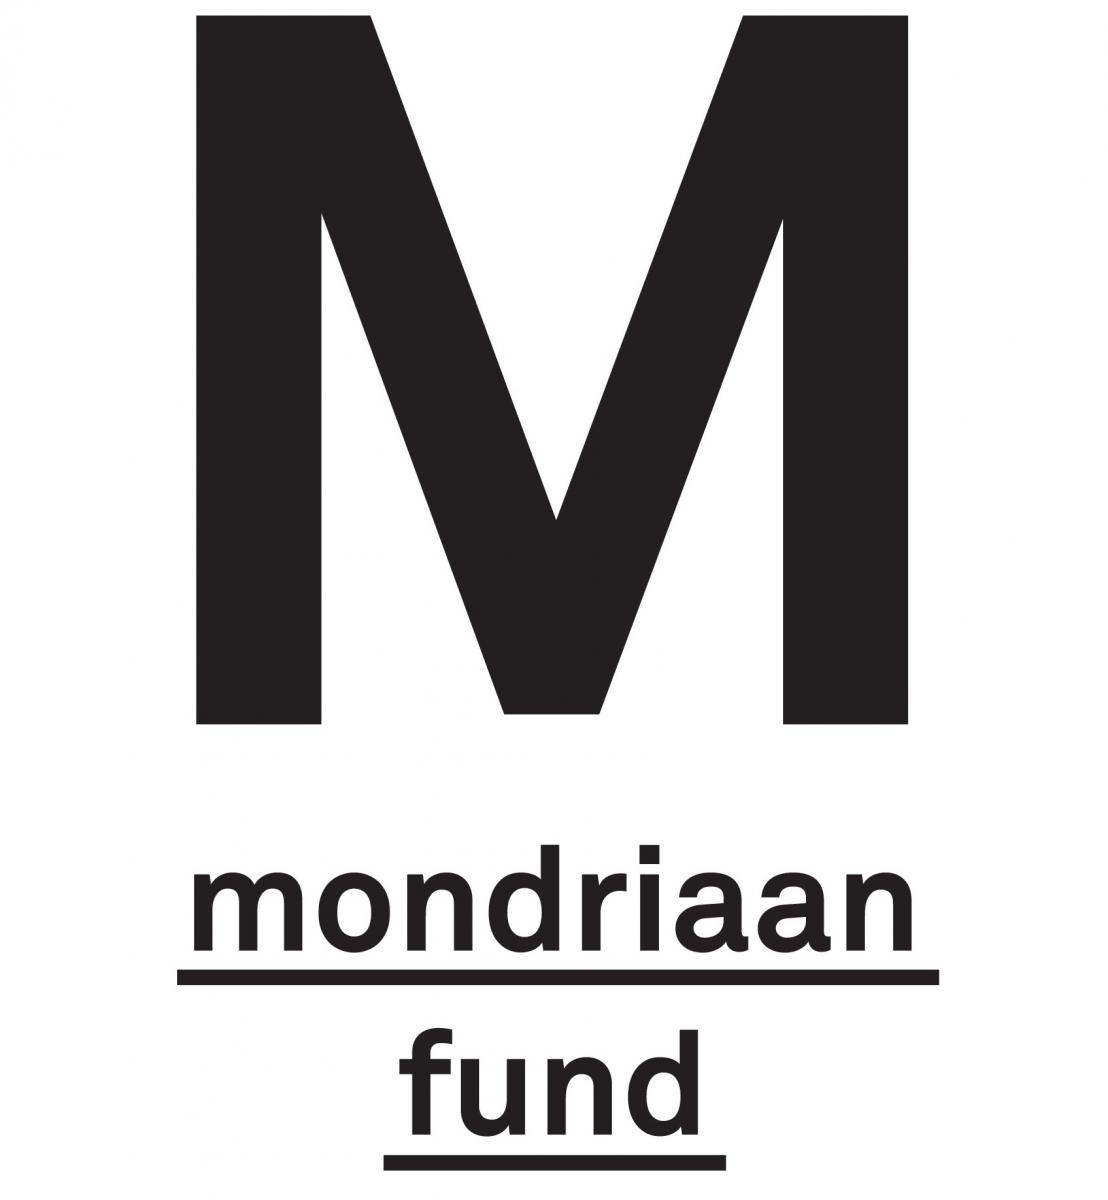 logo for the Mondriaan Fund